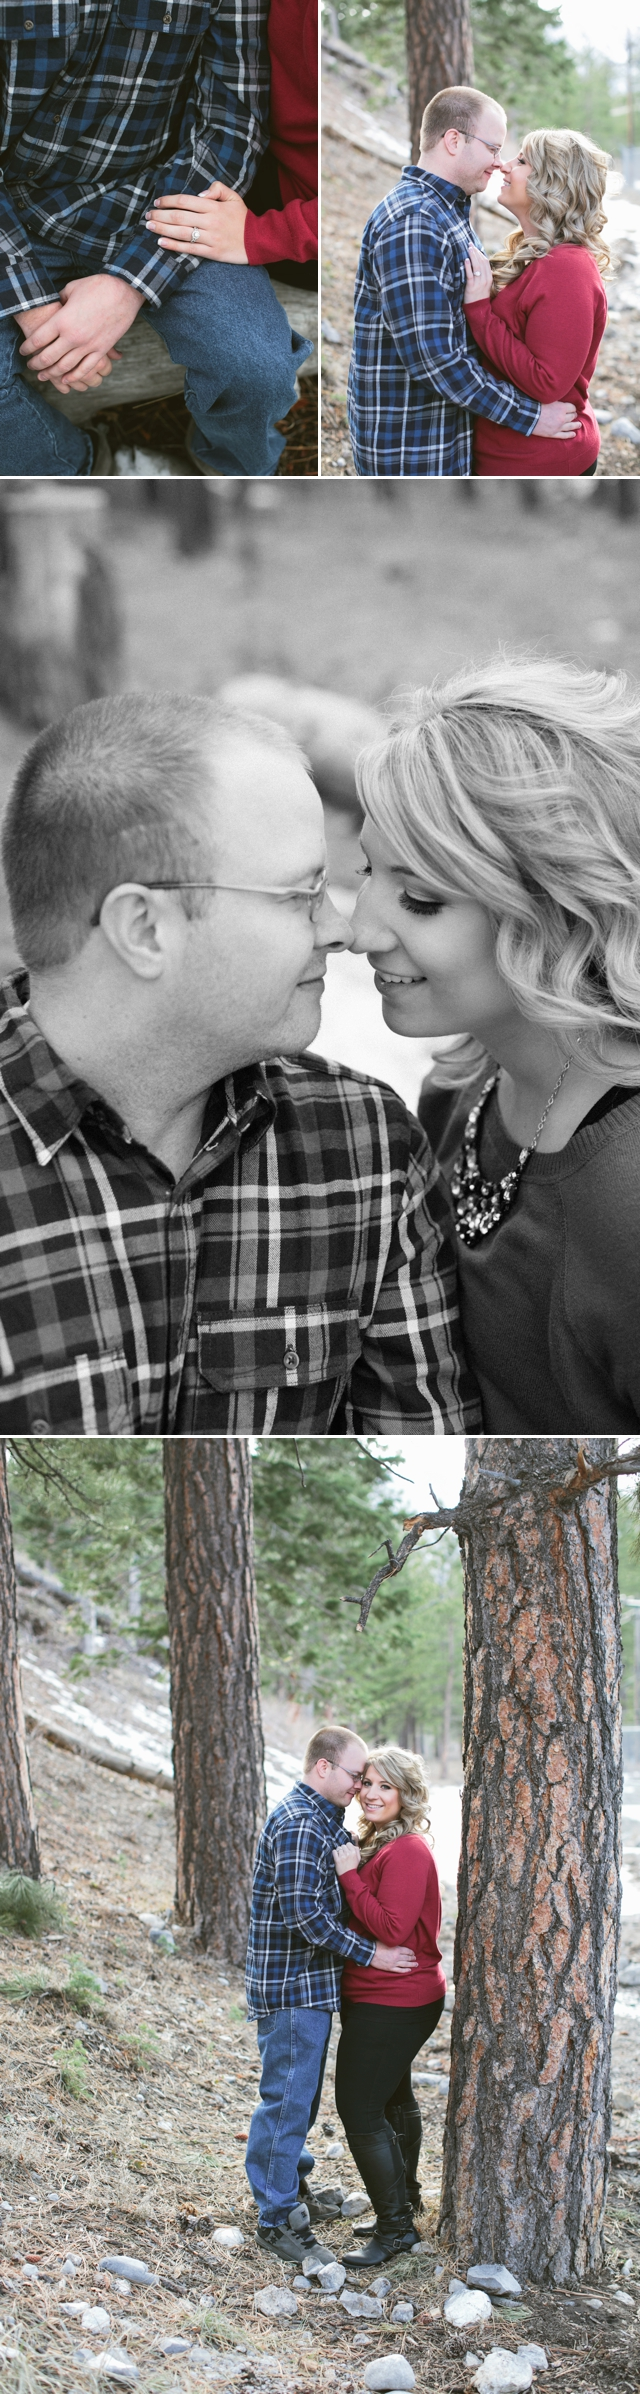 Mt. Charleston Engagements Las Vegas by Meg Ruth Photo with hair and makeup by Your Beauty Call